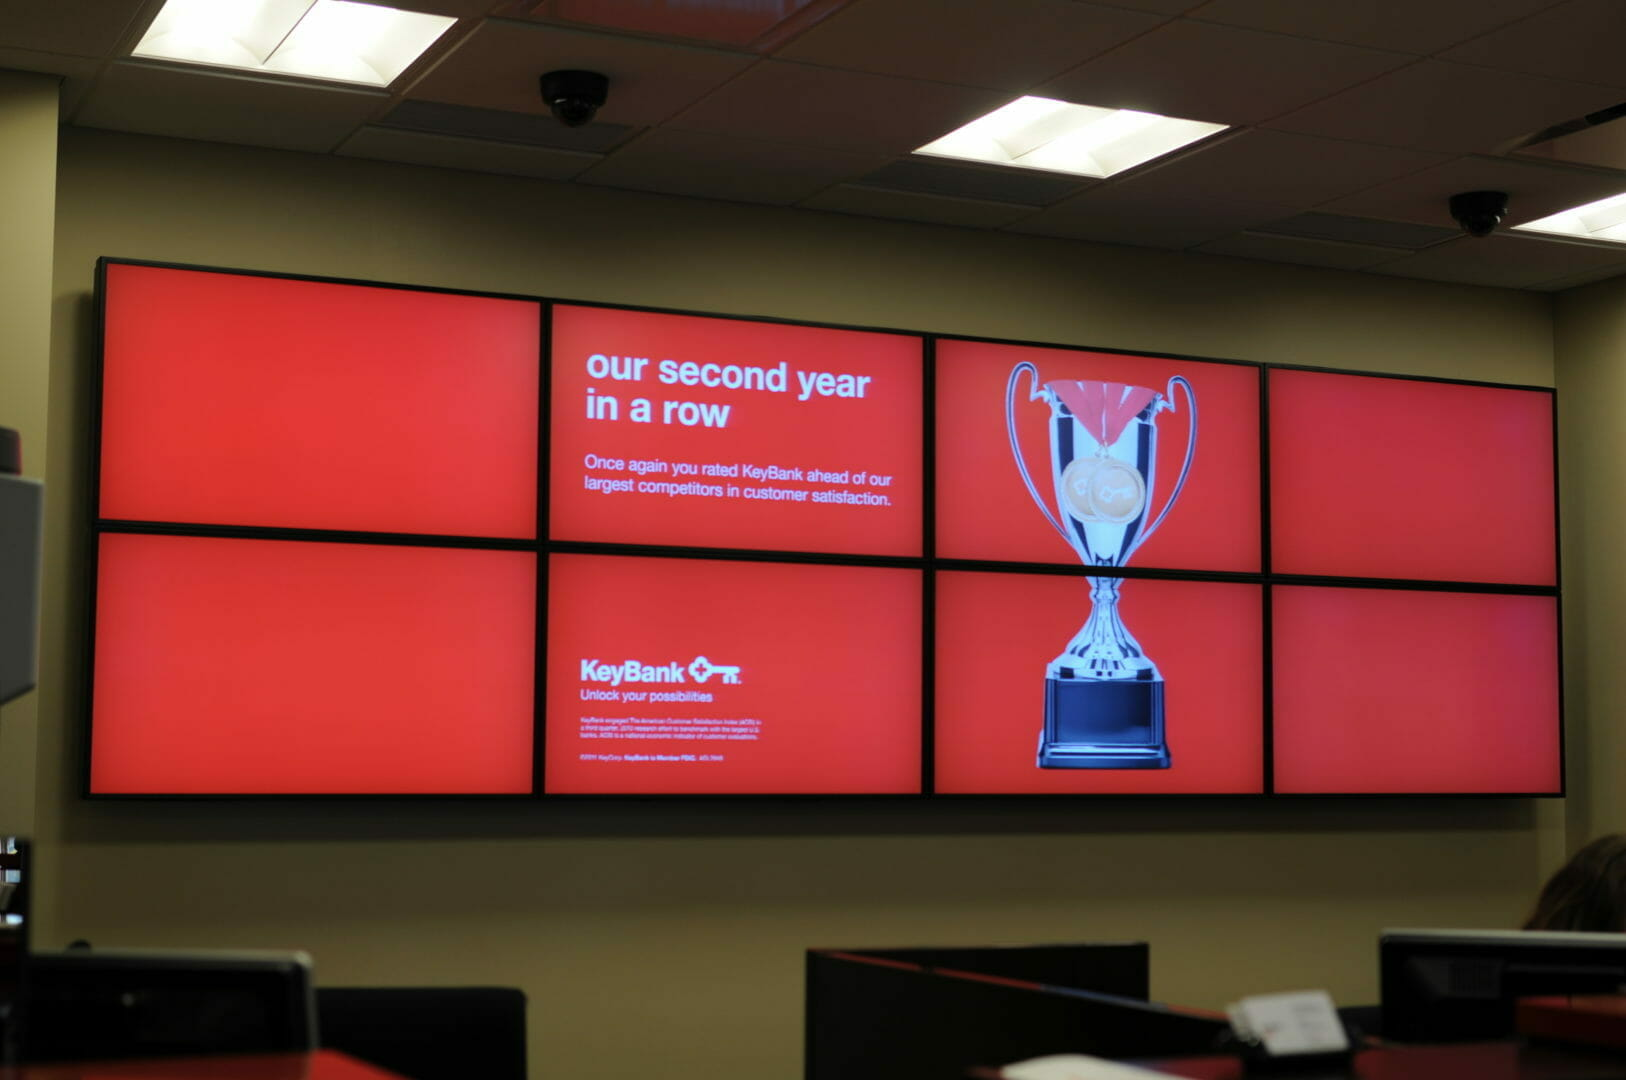 Common Mistakes in Implementing Digital Signage